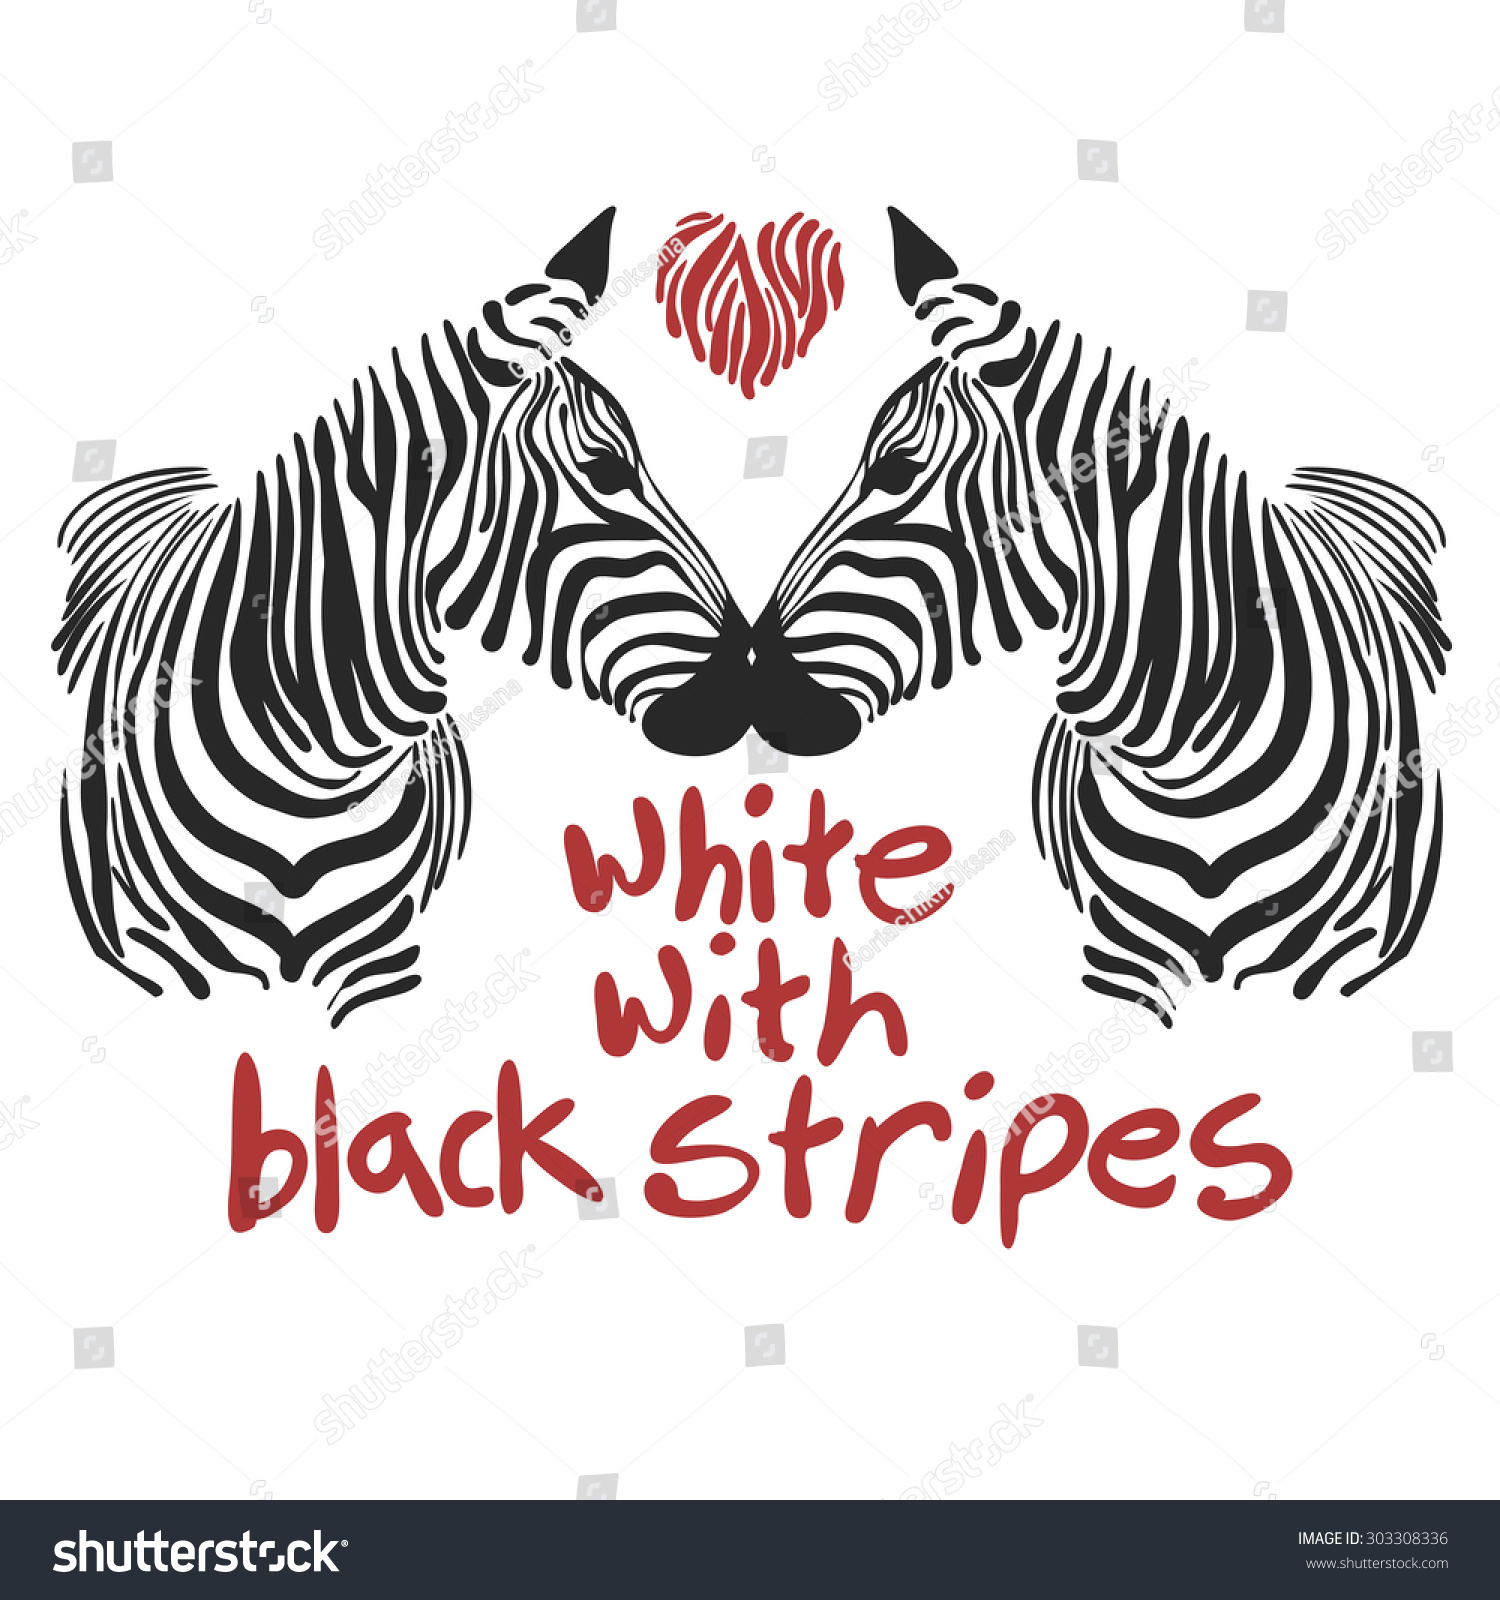 Zebra shirt design - Vector Image Of The Muzzle Zebra With Text Suitable For Printing On Your T